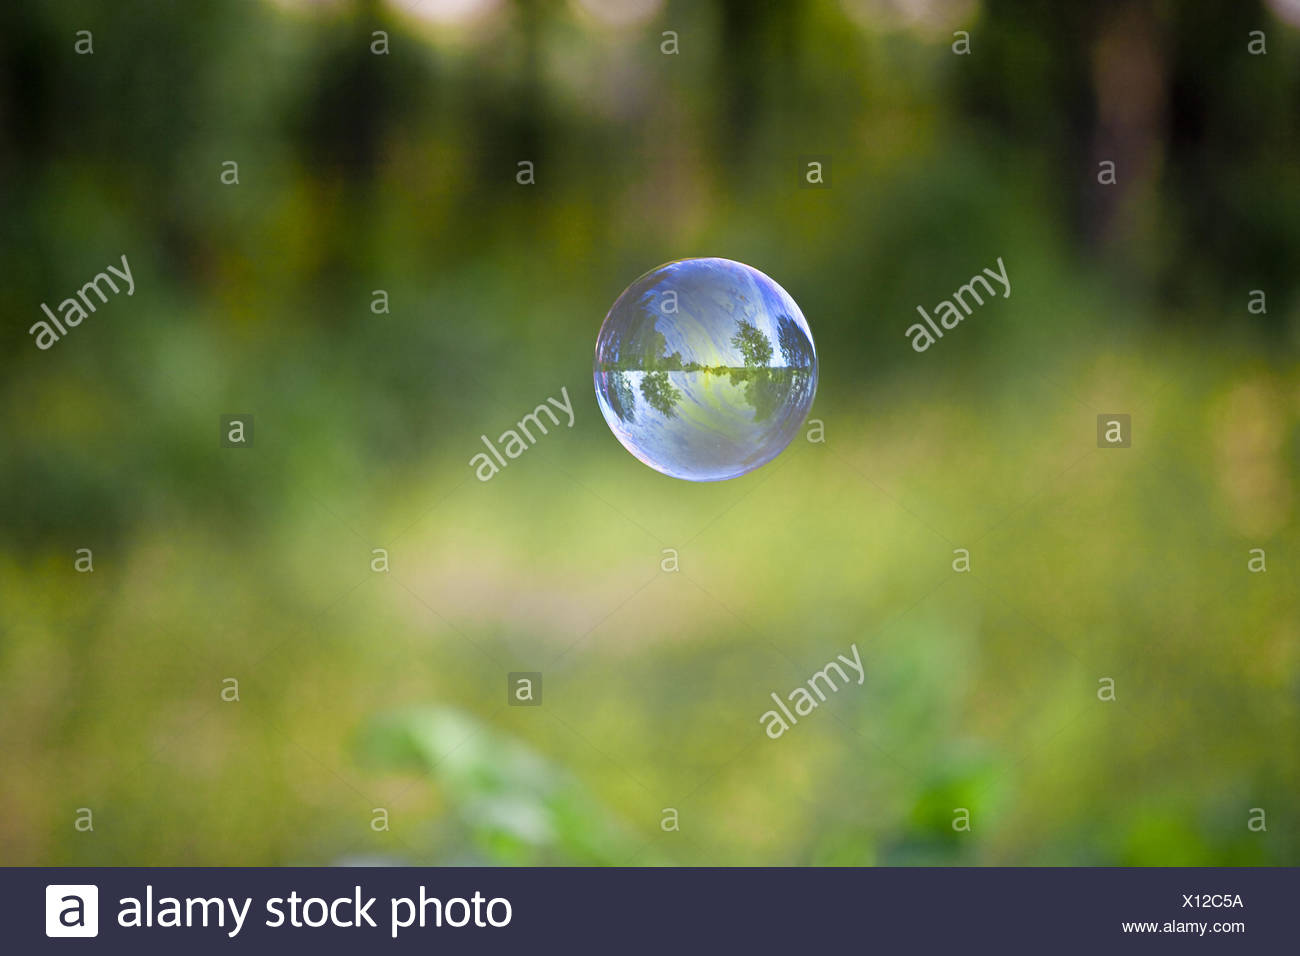 transparent bubble with reflections on a green - Stock Image